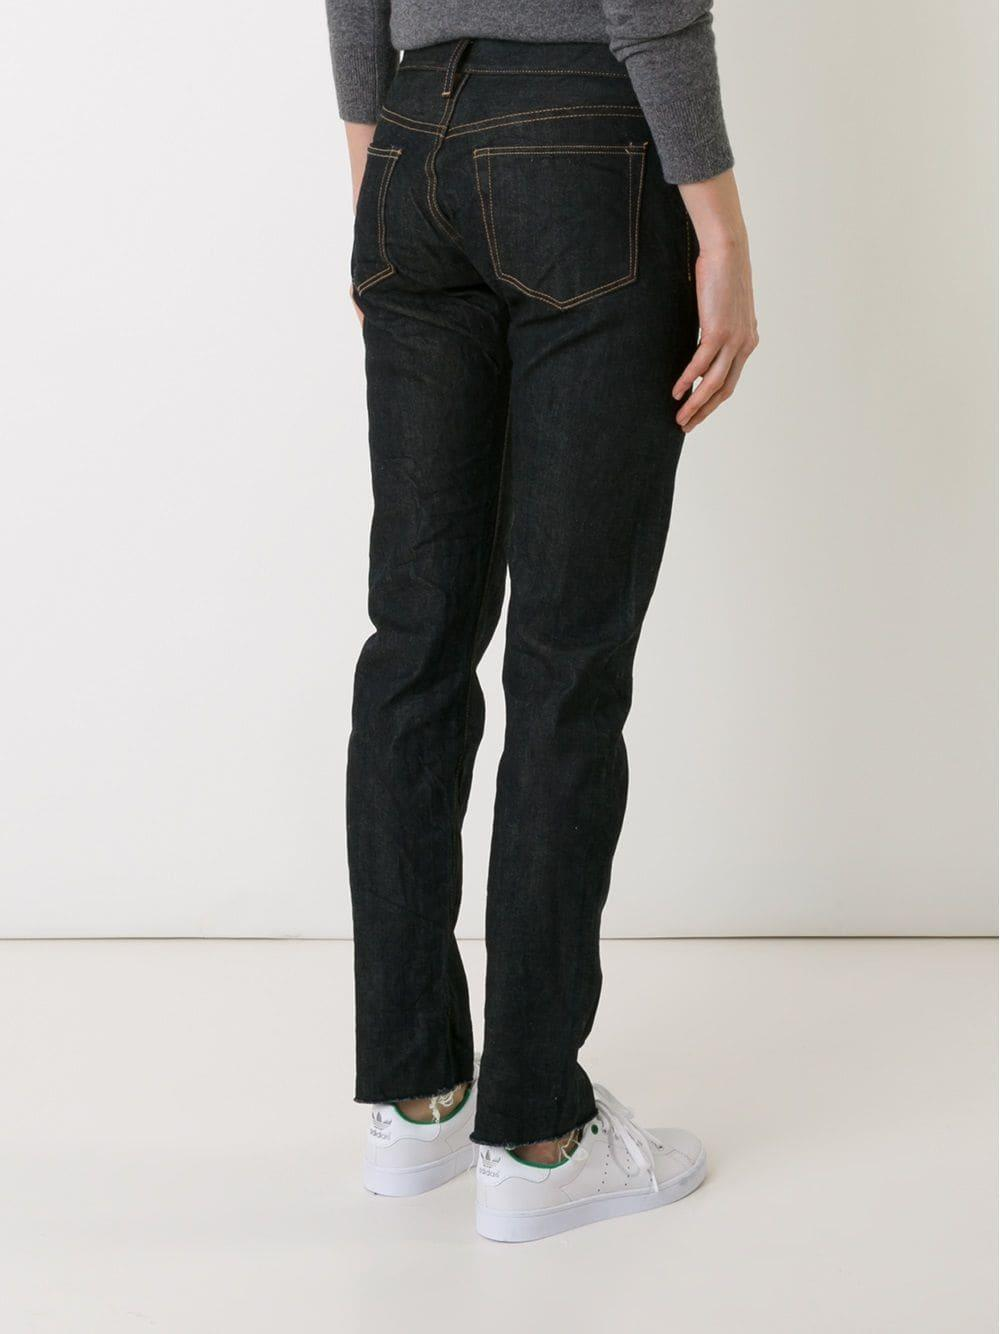 Simon Miller Denim - Straight Leg Jeans - Women - Cotton/polyurethane - 31 in Blue